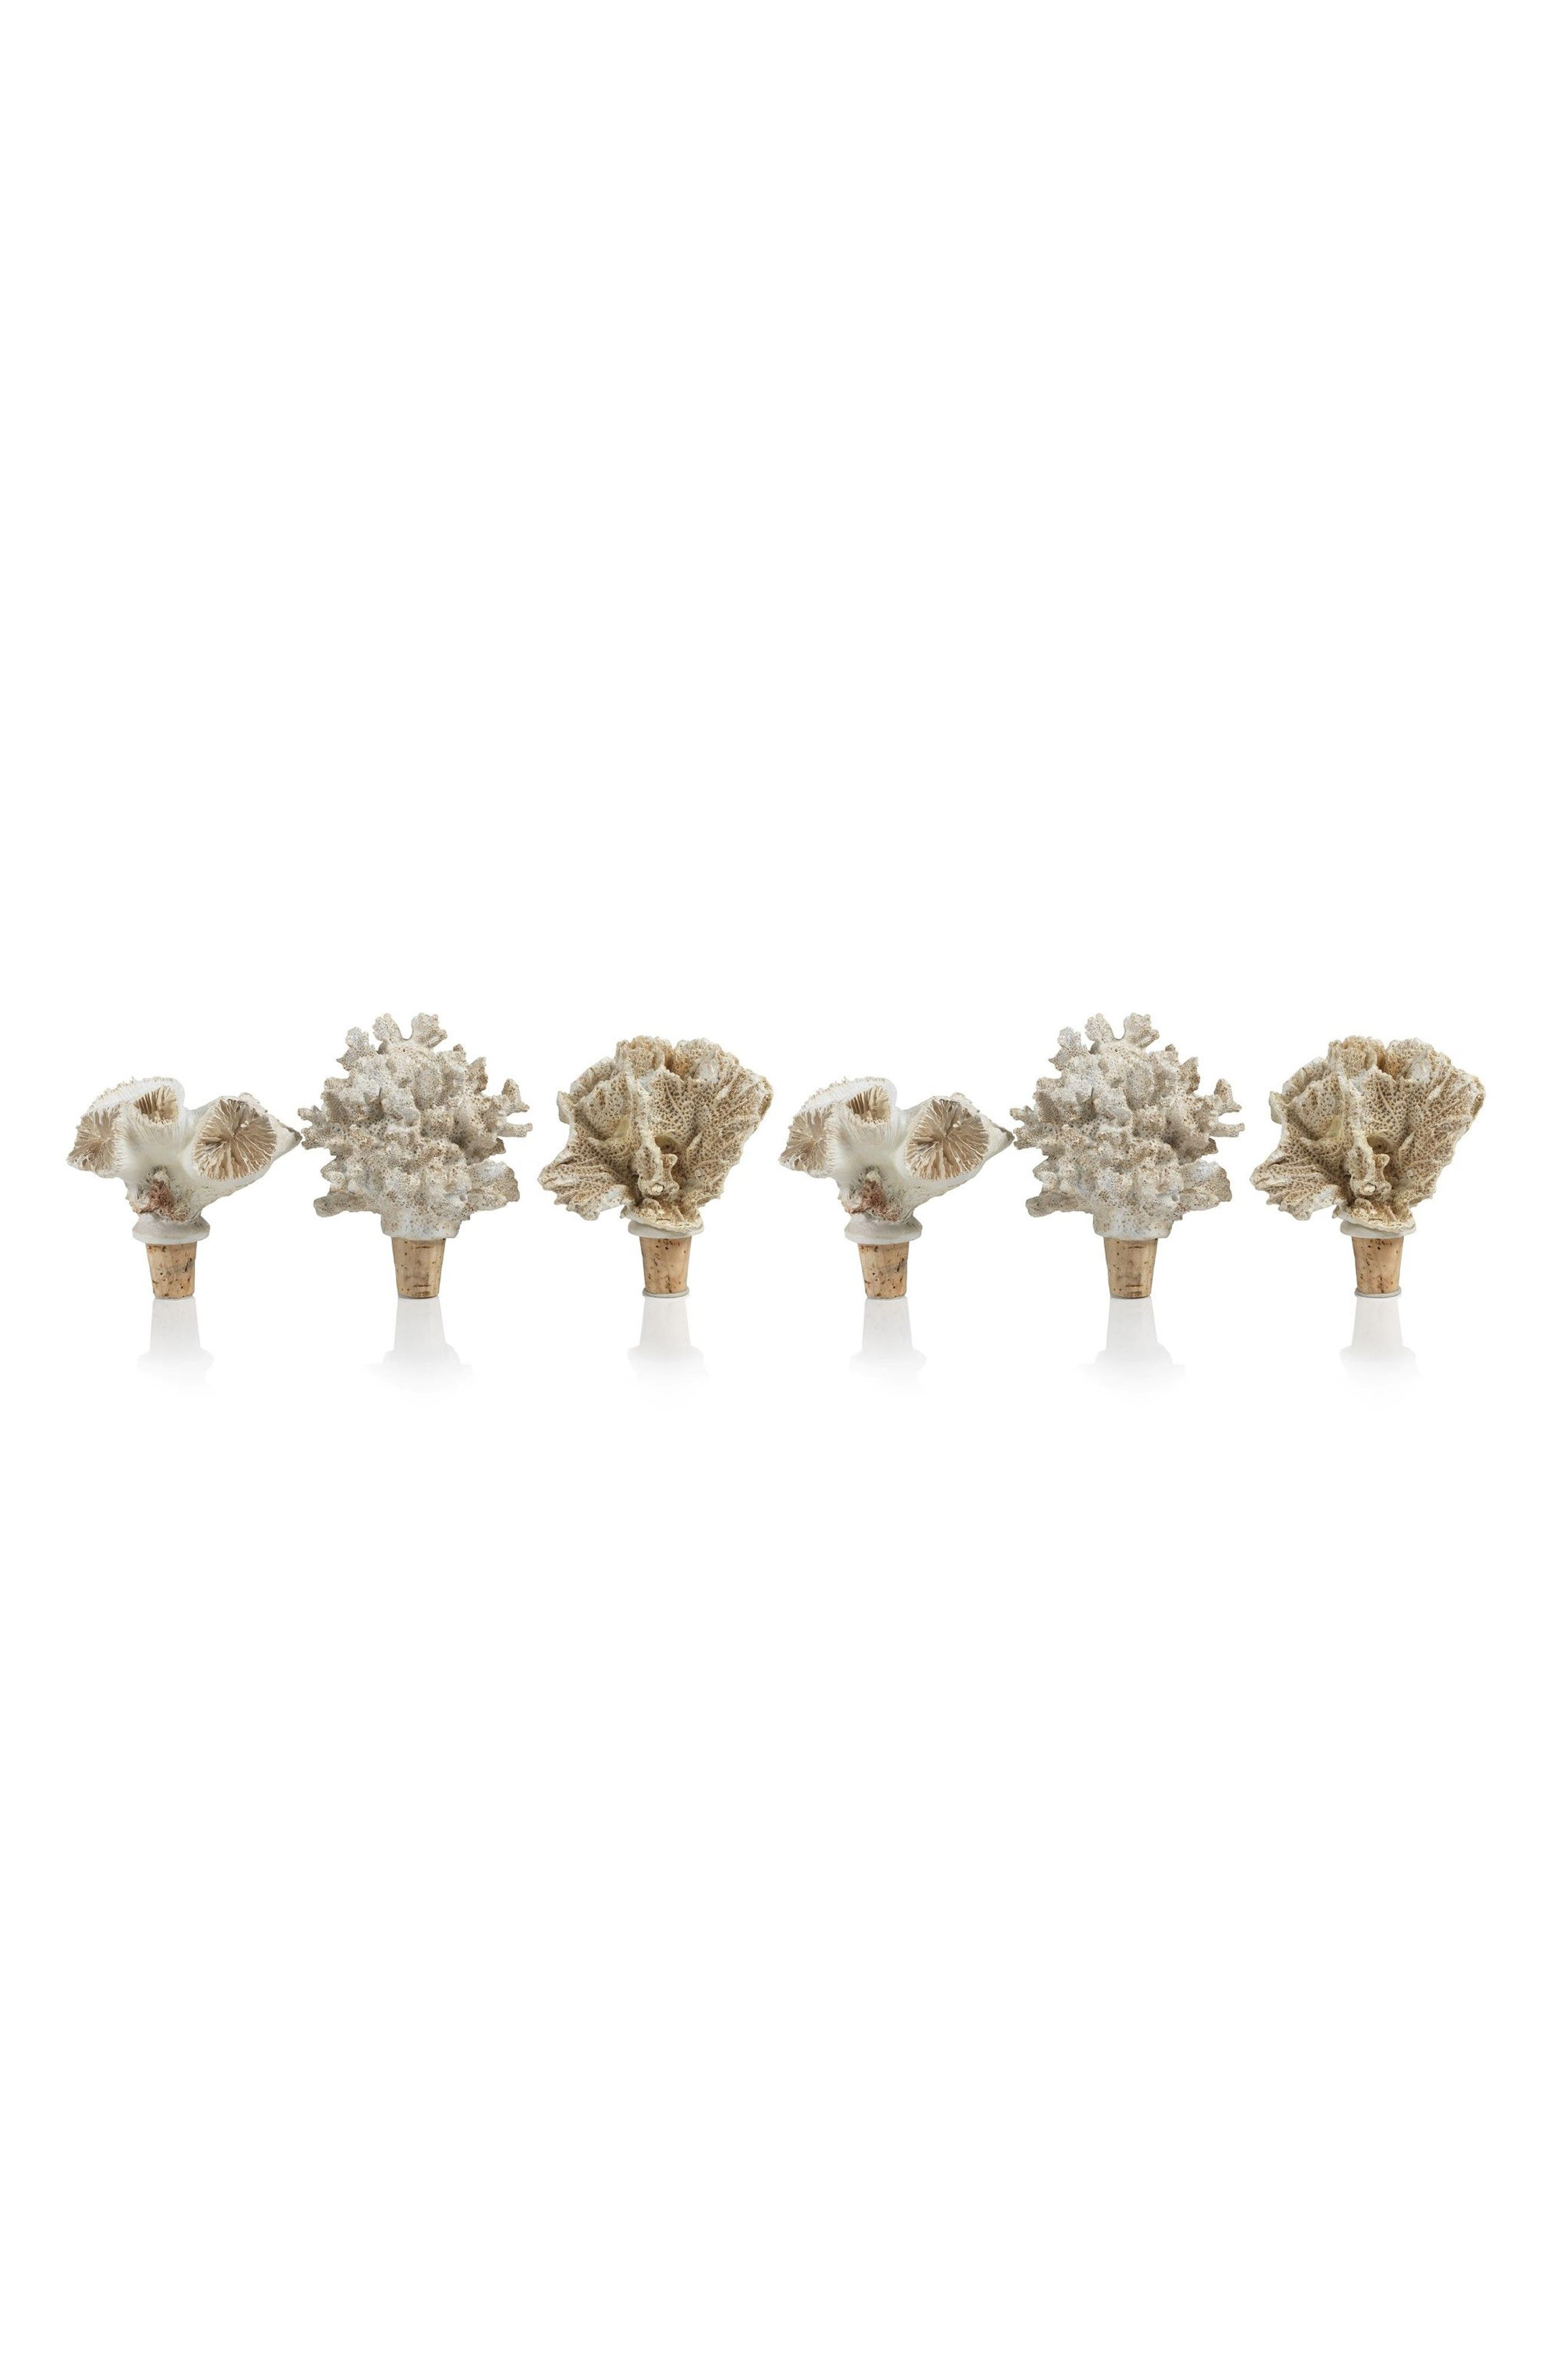 Sea Coral Set of 6 Bottle Stoppers,                         Main,                         color, 100